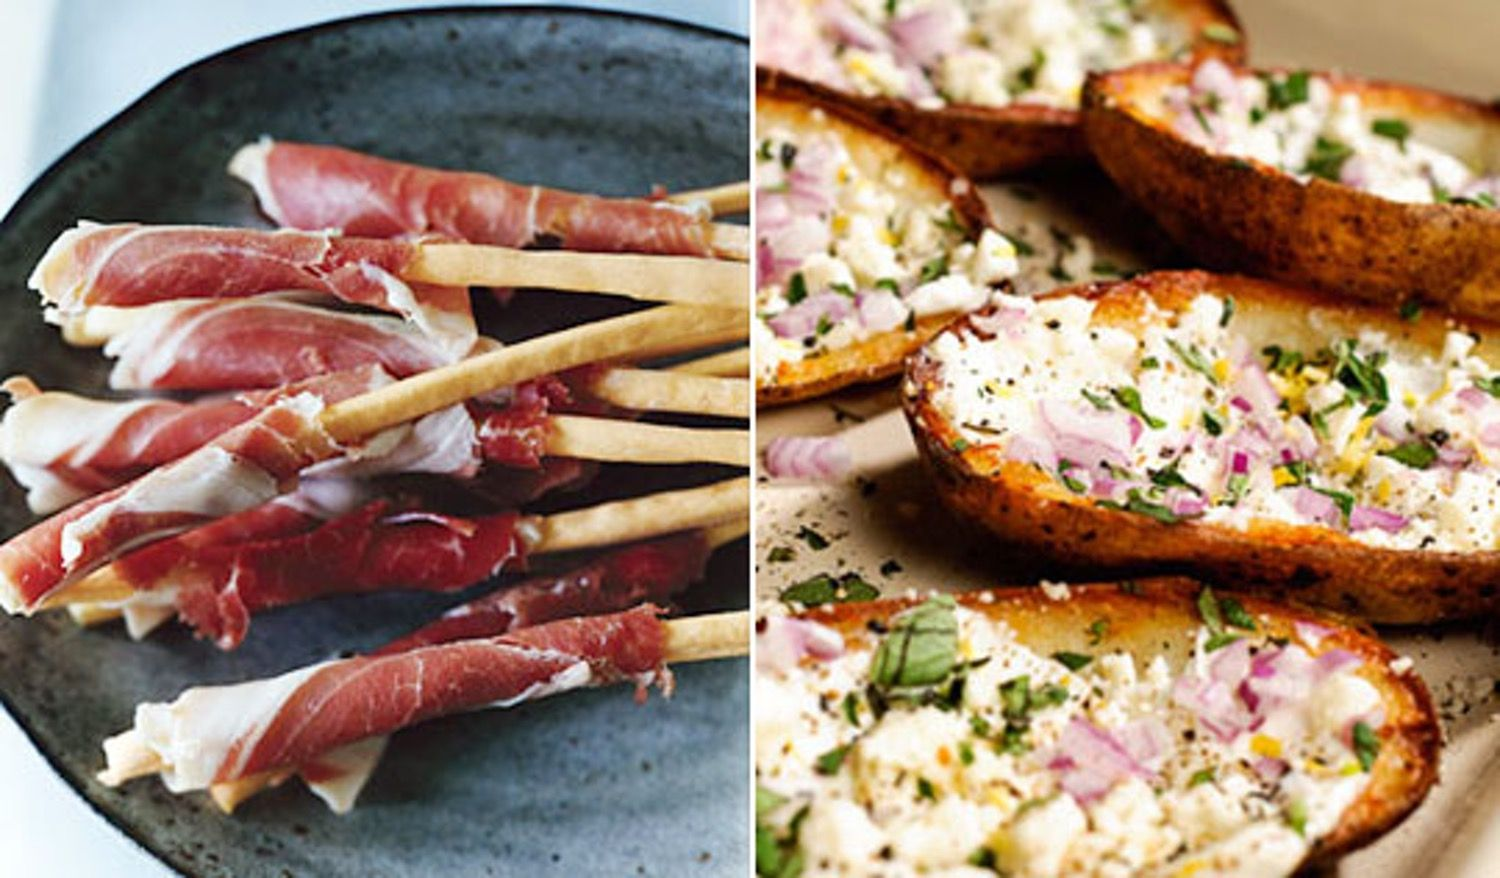 No Utensils: Tips on Appetizer-Ready Portions Without Toothpicks